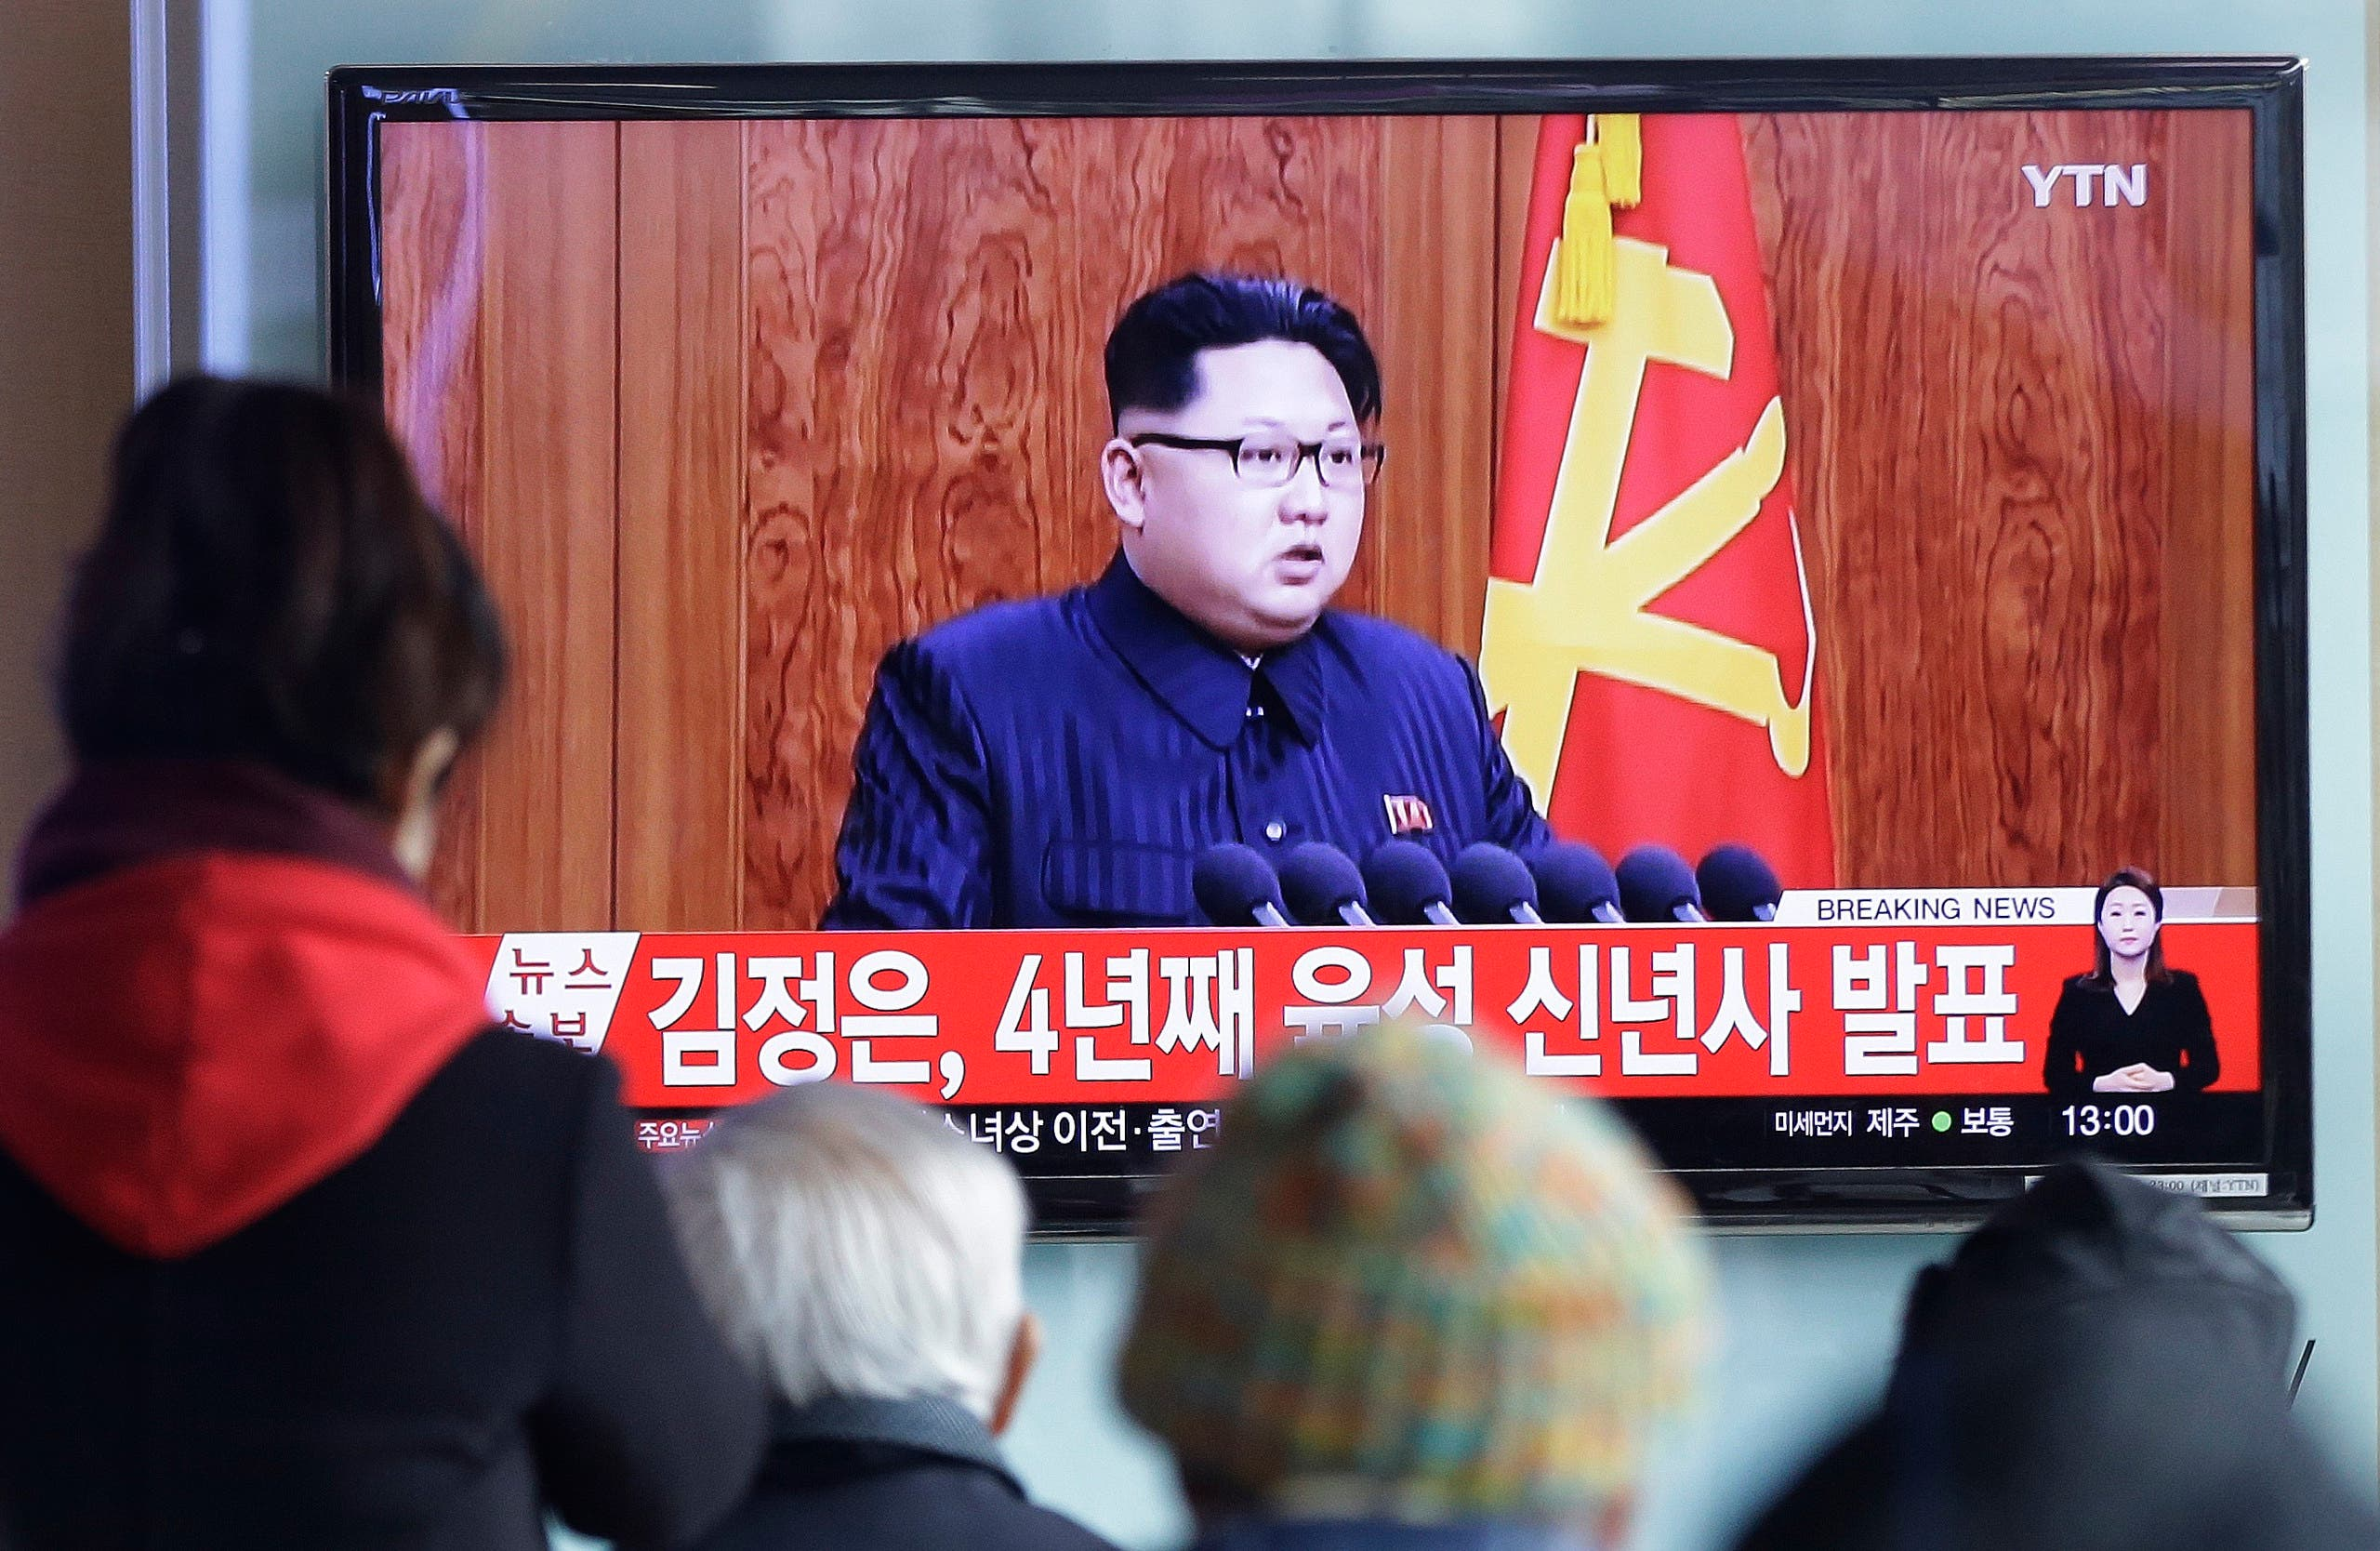 South Koreans watch a TV news program showing North Korean leader Kim Jong Un's New Year speech, at the Seoul Railway Station in Seoul, South Korea, Friday, Jan. 1, 2016. (AP)